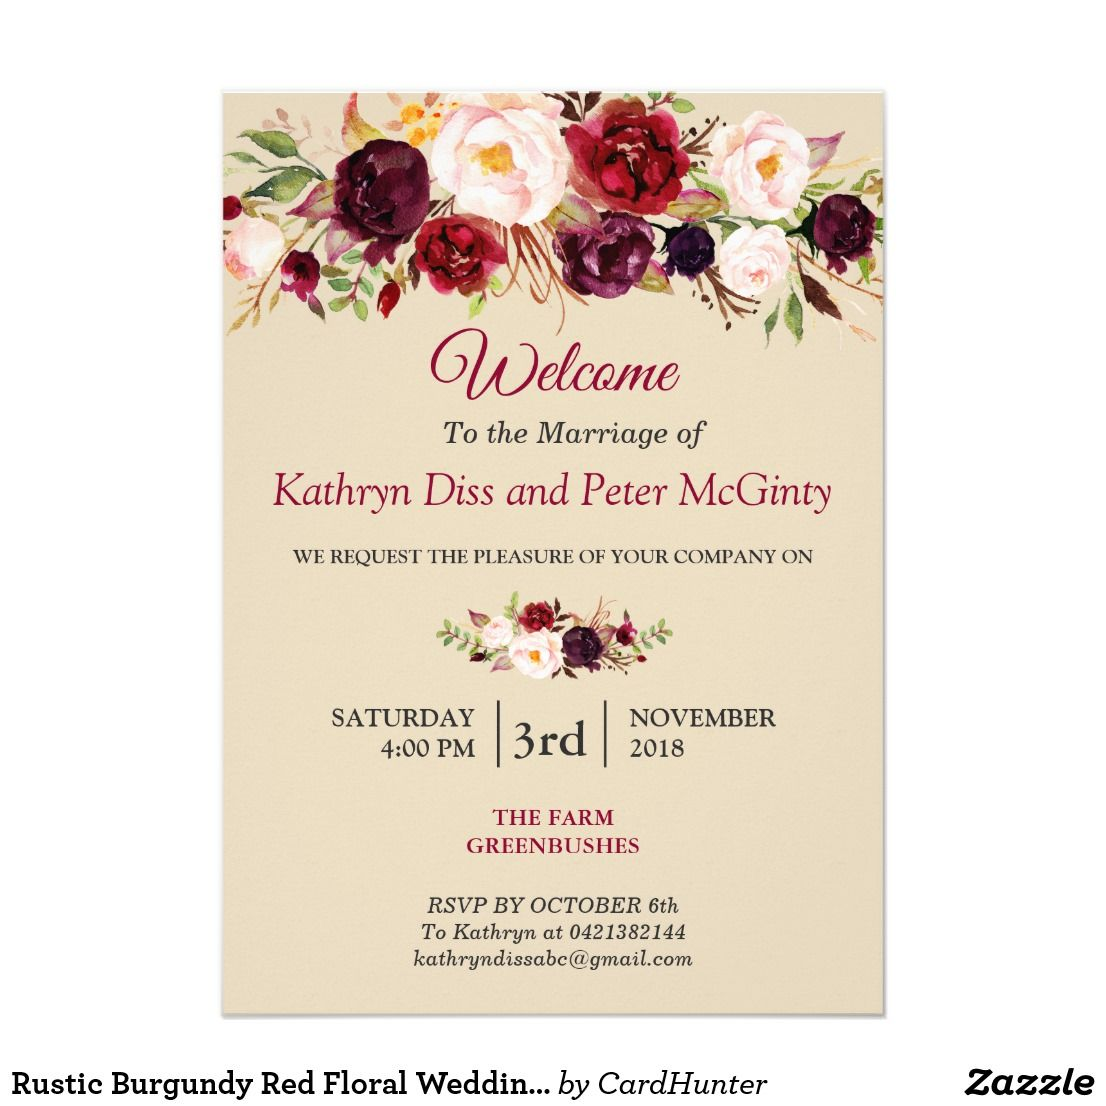 Wedding decorations at church november 2018 Rustic Burgundy Red Floral Wedding Vow Renewal Invitation  Wedding